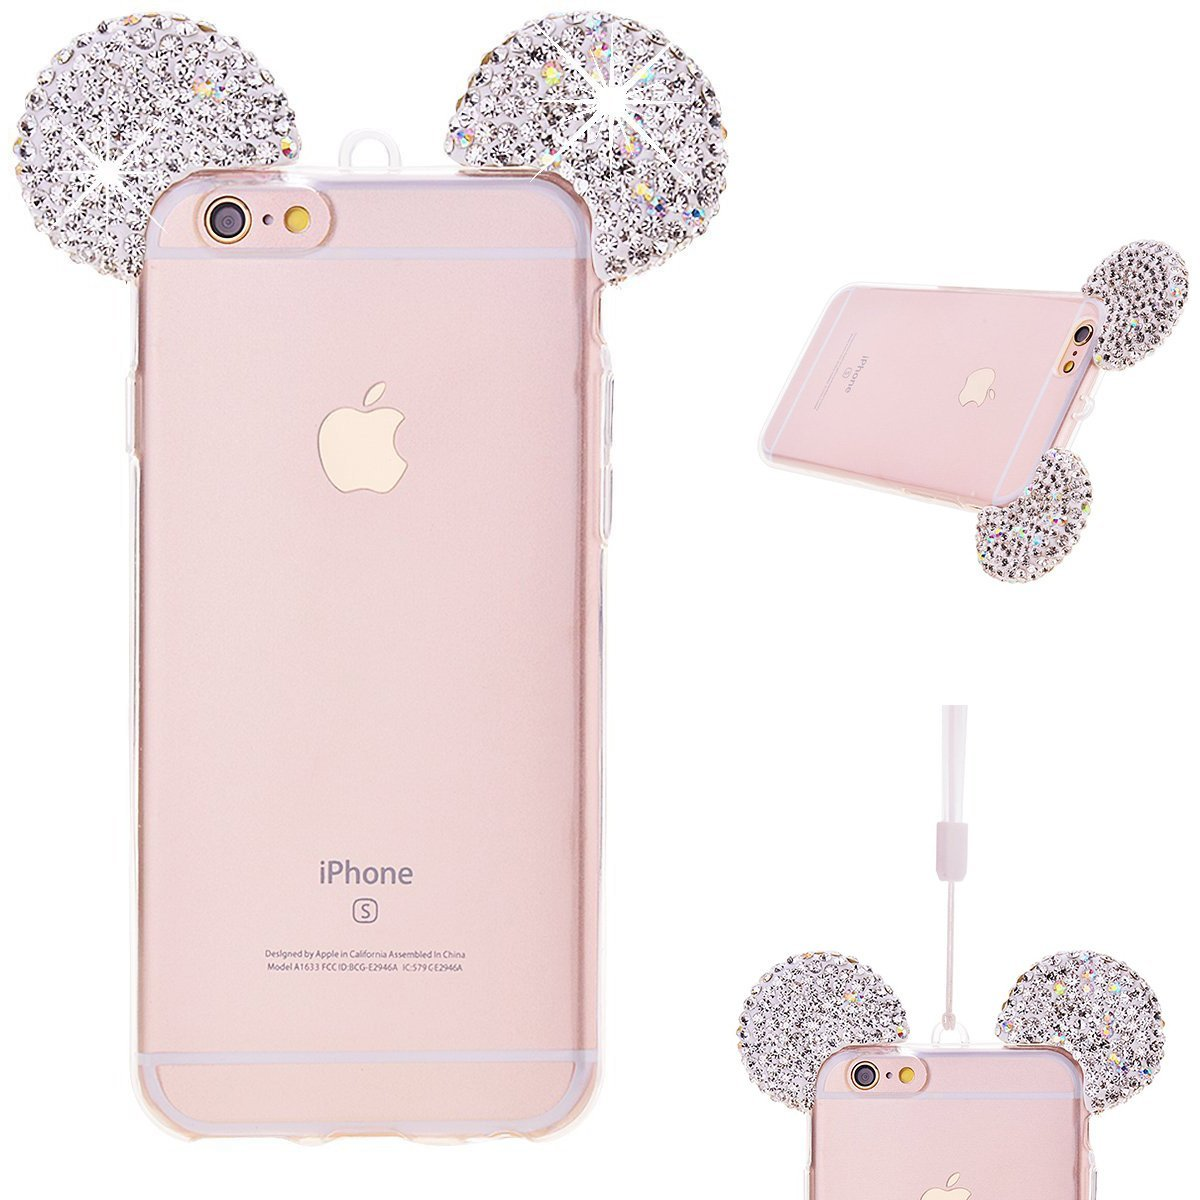 Luxury Bling Glitter <font><b>Case</b></font> For <font><b>iPhone</b></font> <font><b>8</b></font> 7 6 6S Plus 5 5S SE XR XS Max Back Cover 3D Crystal <font><b>Mickey</b></font> Ears Soft Silicone Phone <font><b>Cases</b></font> image